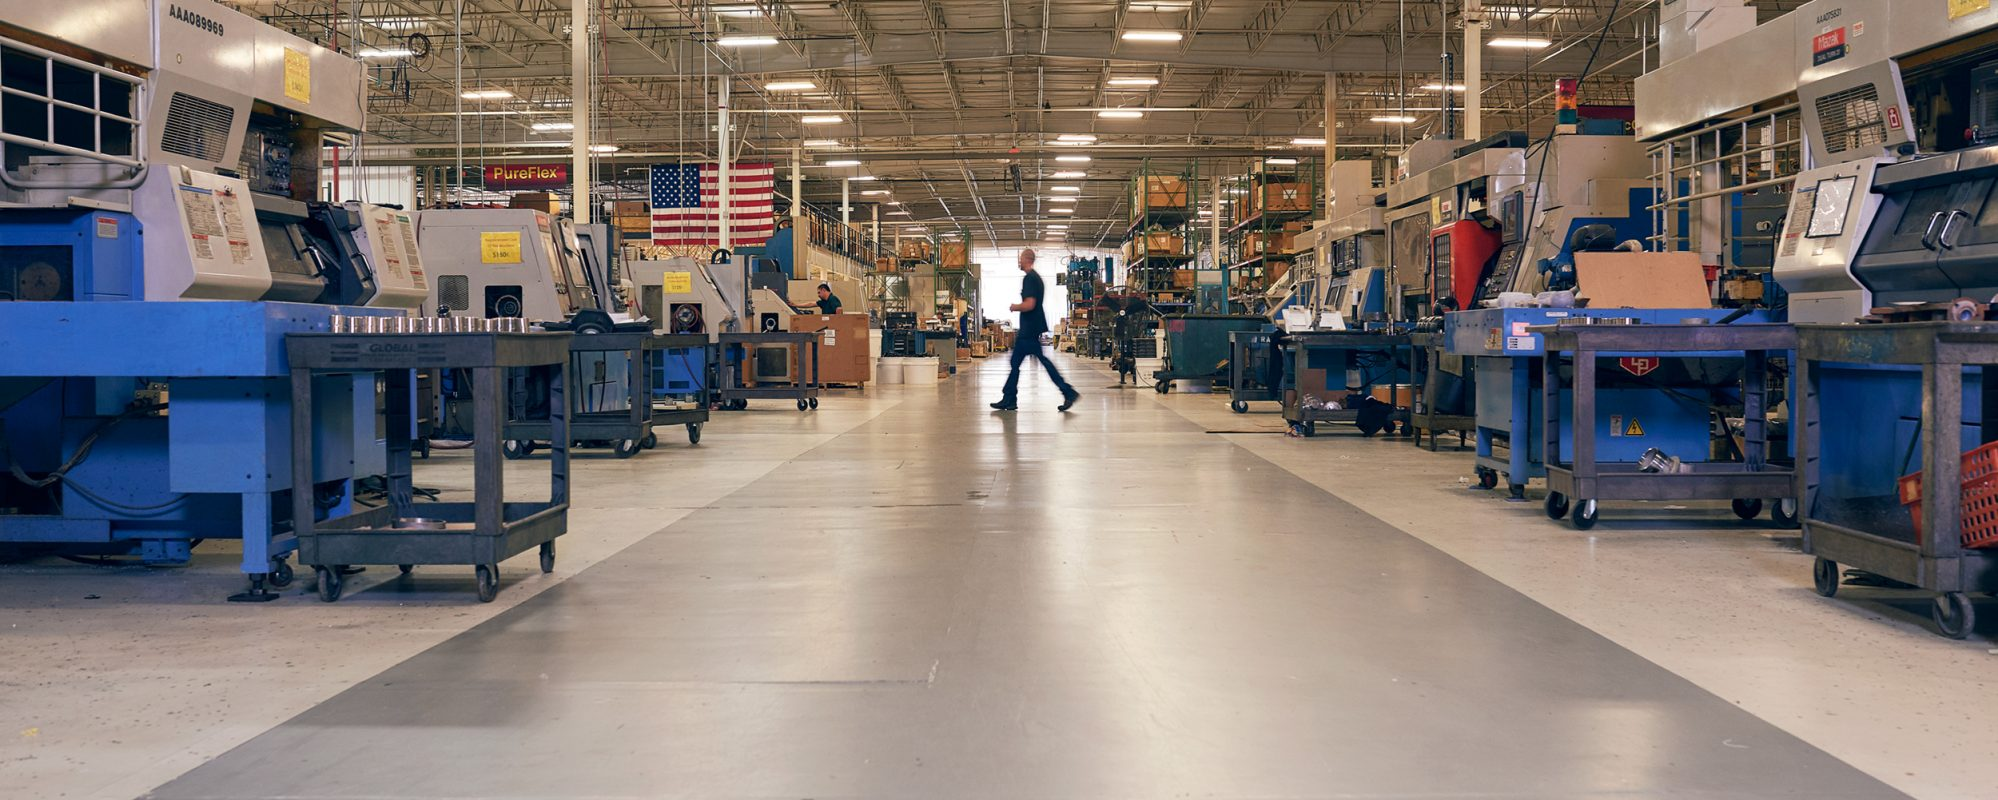 Image of manufacturing business on Beene Garter's international tax page